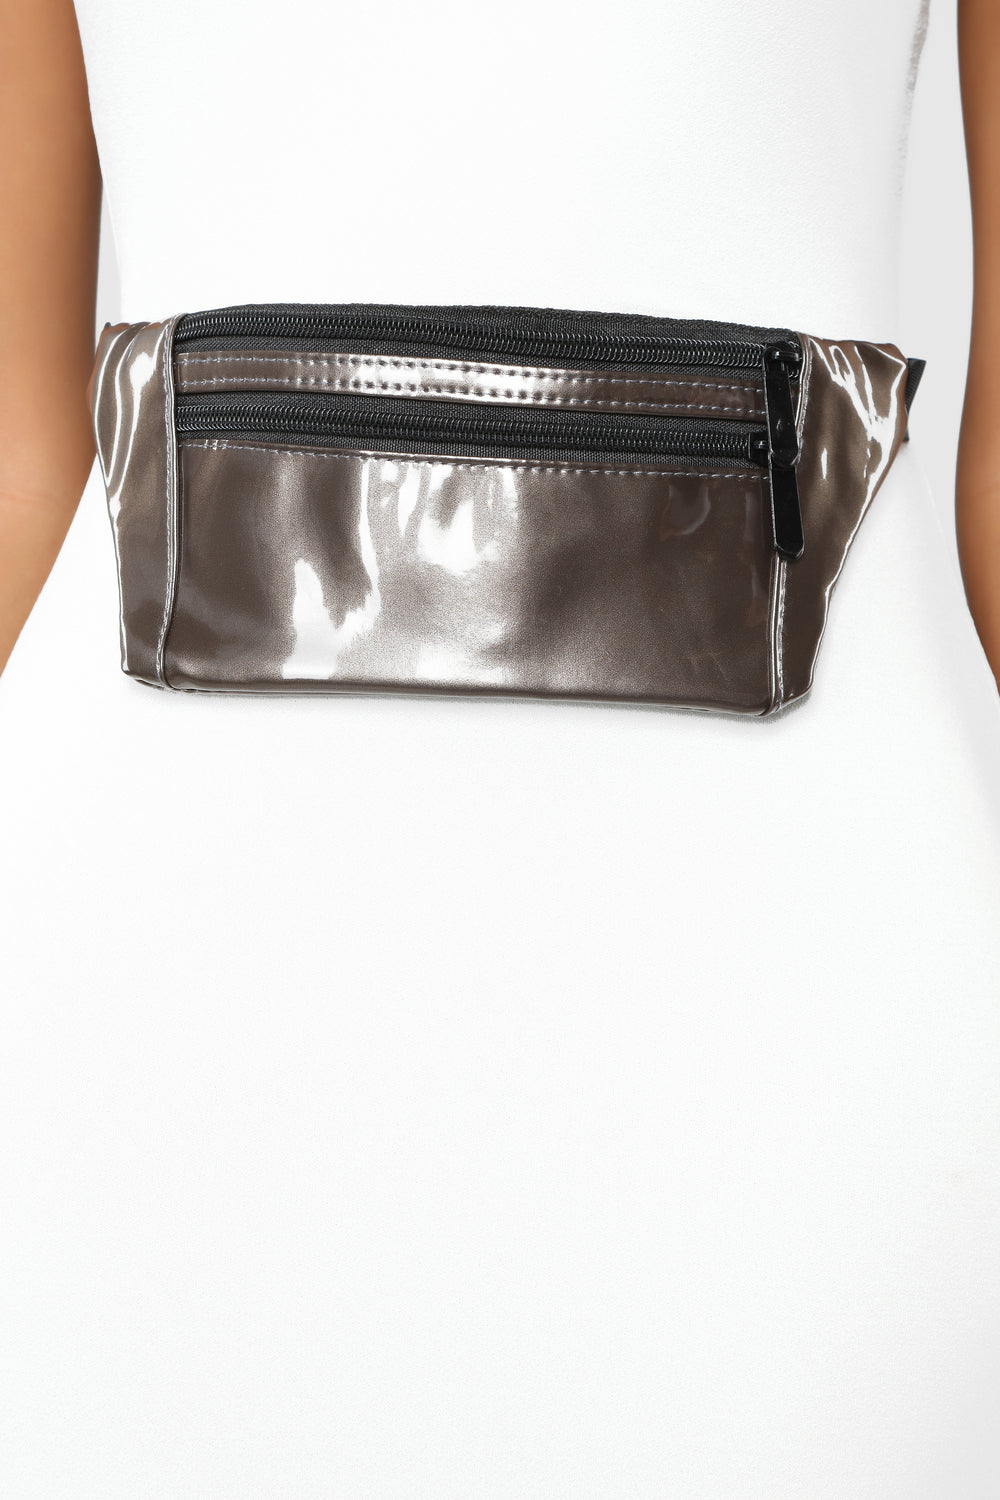 Pat On The Back Fanny Pack - Charcoal